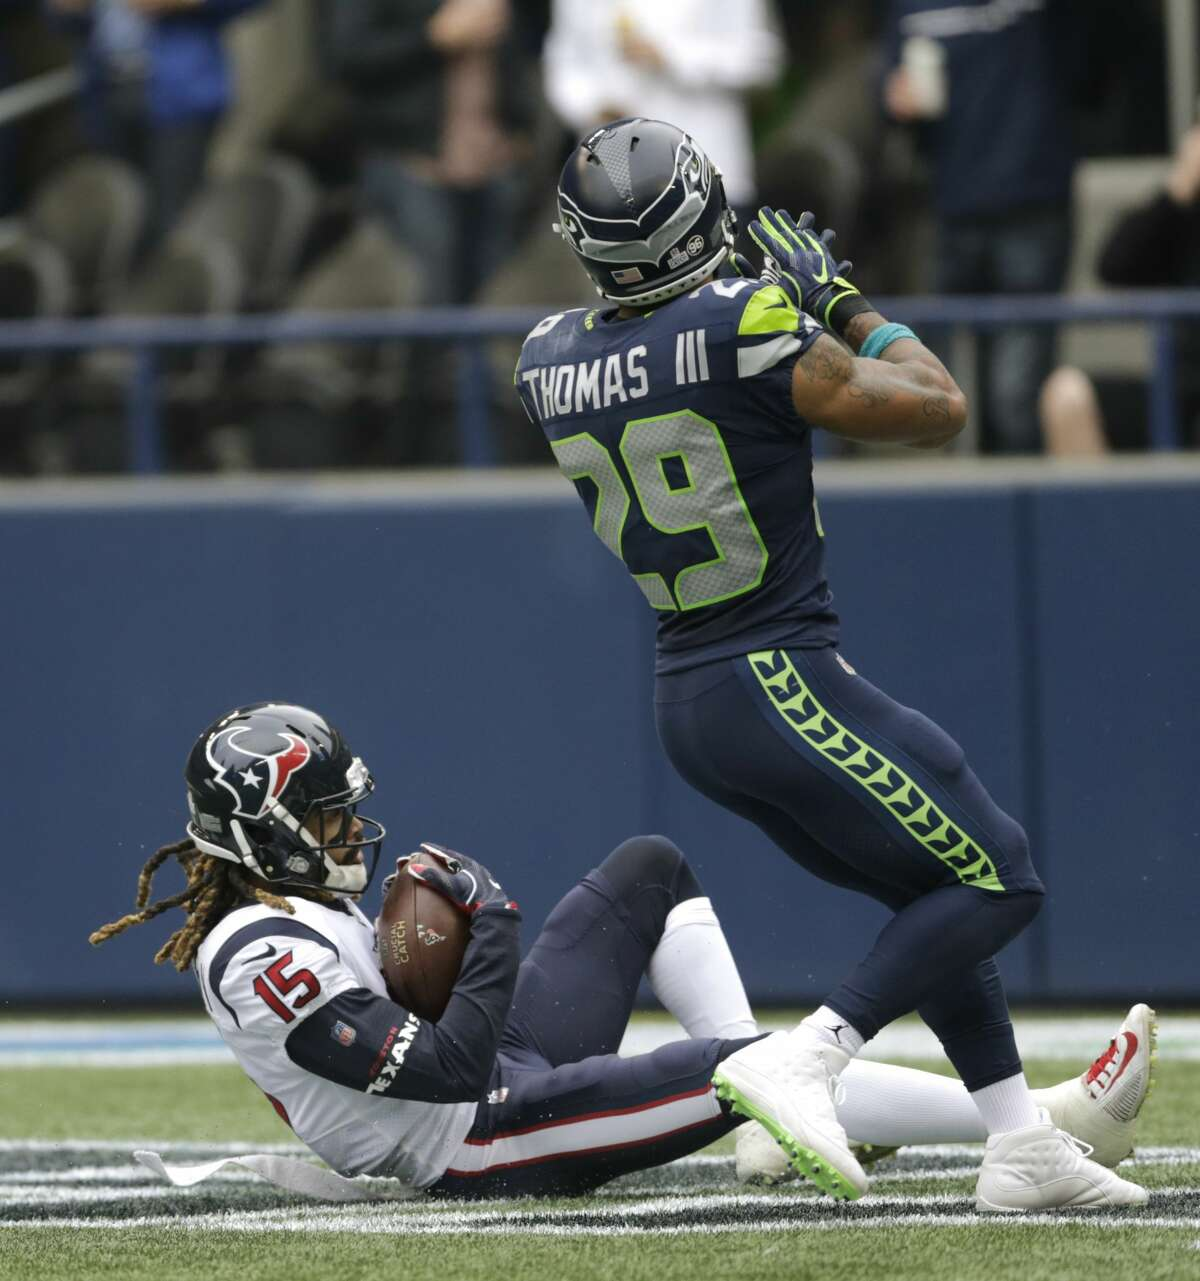 Houston Texans wide receiver Will Fuller (15) comes down with the ball for a touchdown as Seattle Seahawks free safety Earl Thomas (29) looks on in the first half of an NFL football game, Sunday, Oct. 29, 2017, in Seattle. (AP Photo/Stephen Brashear)